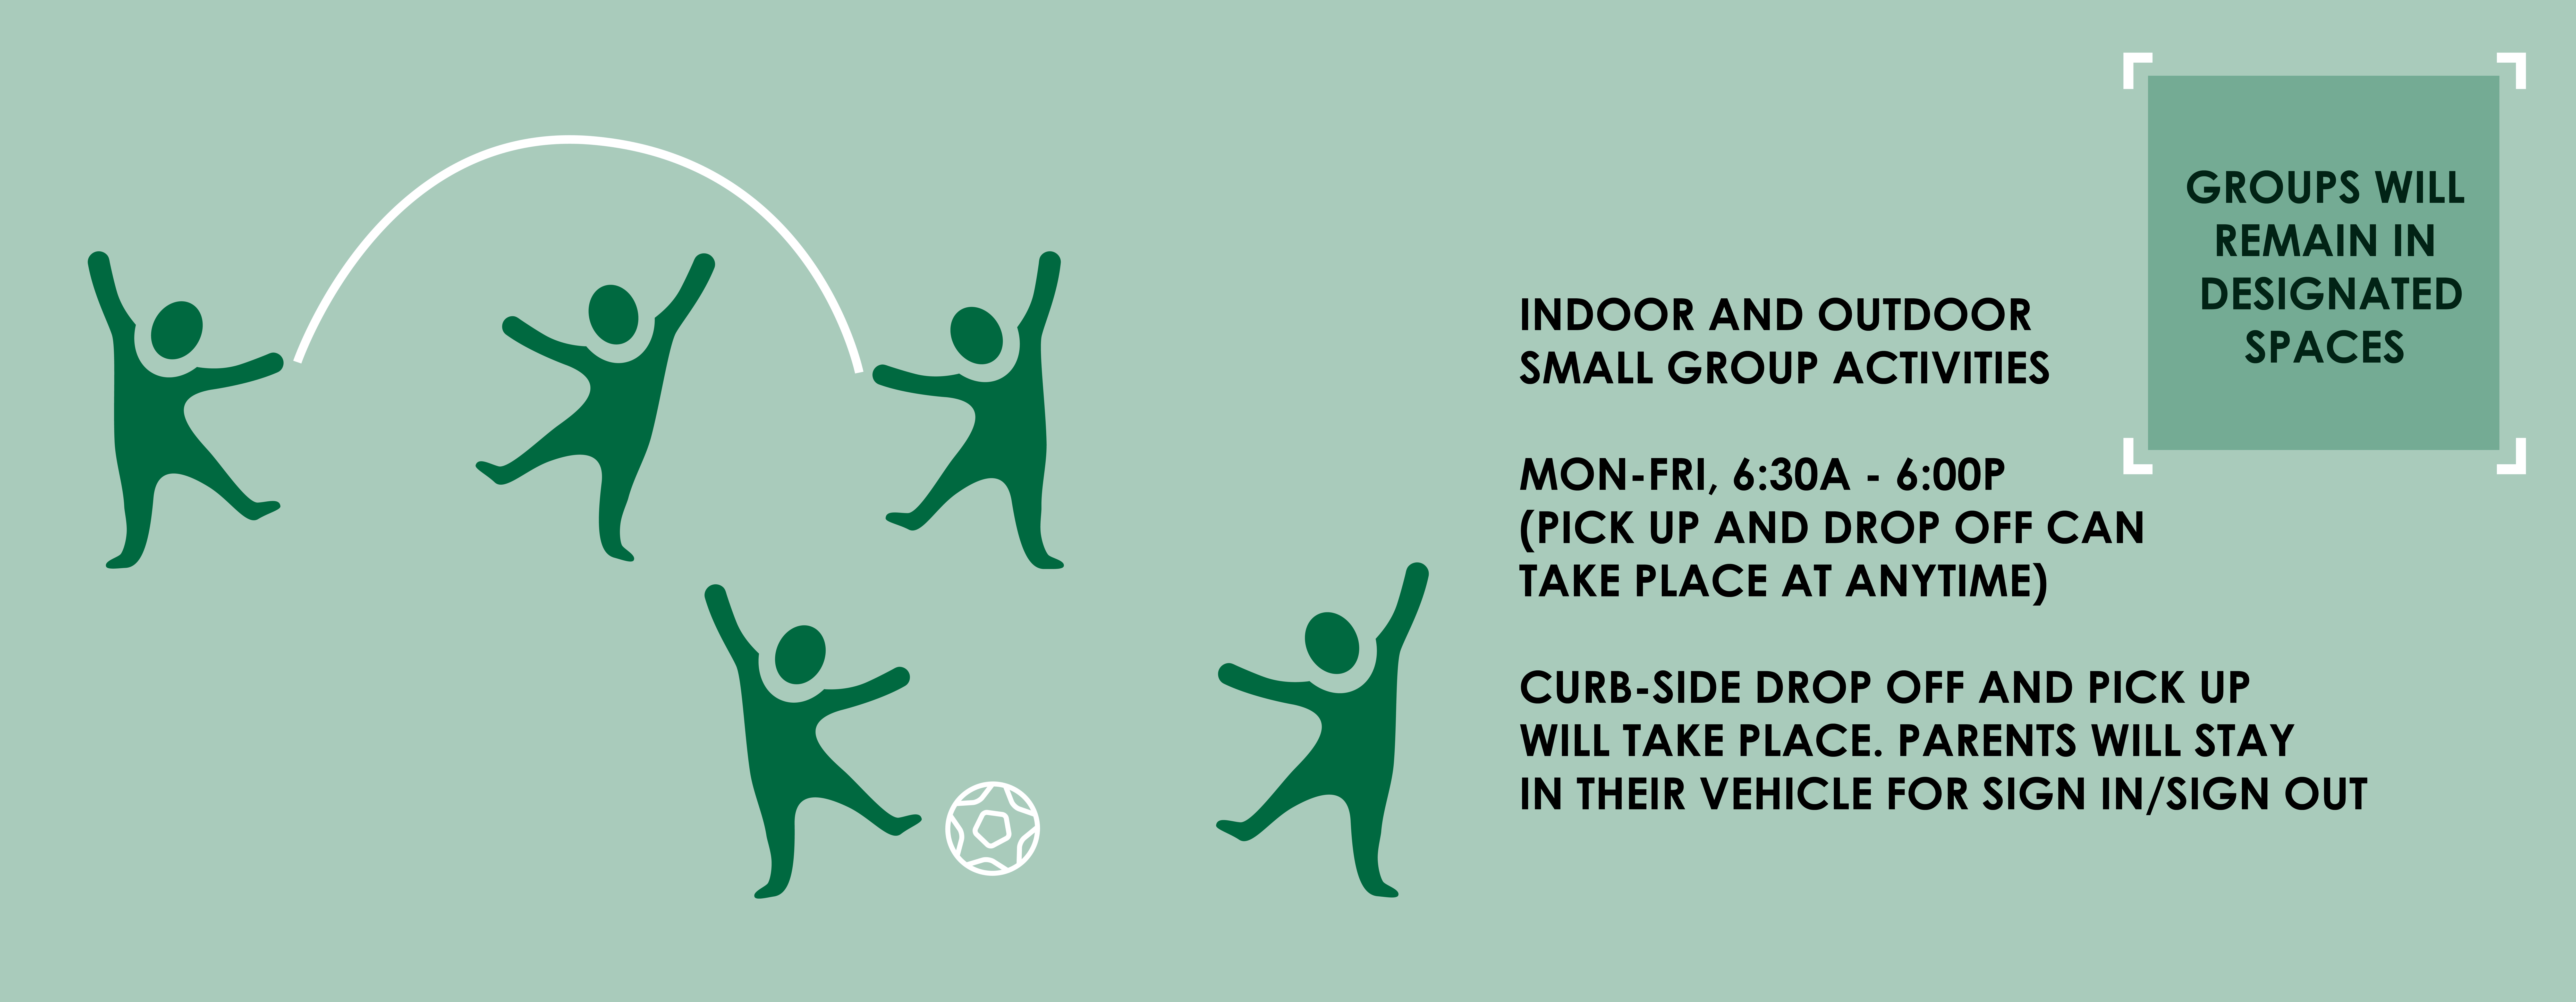 Monday - Friday 6:30 a to 6 pm care available. Groups will remain in designated spaces.